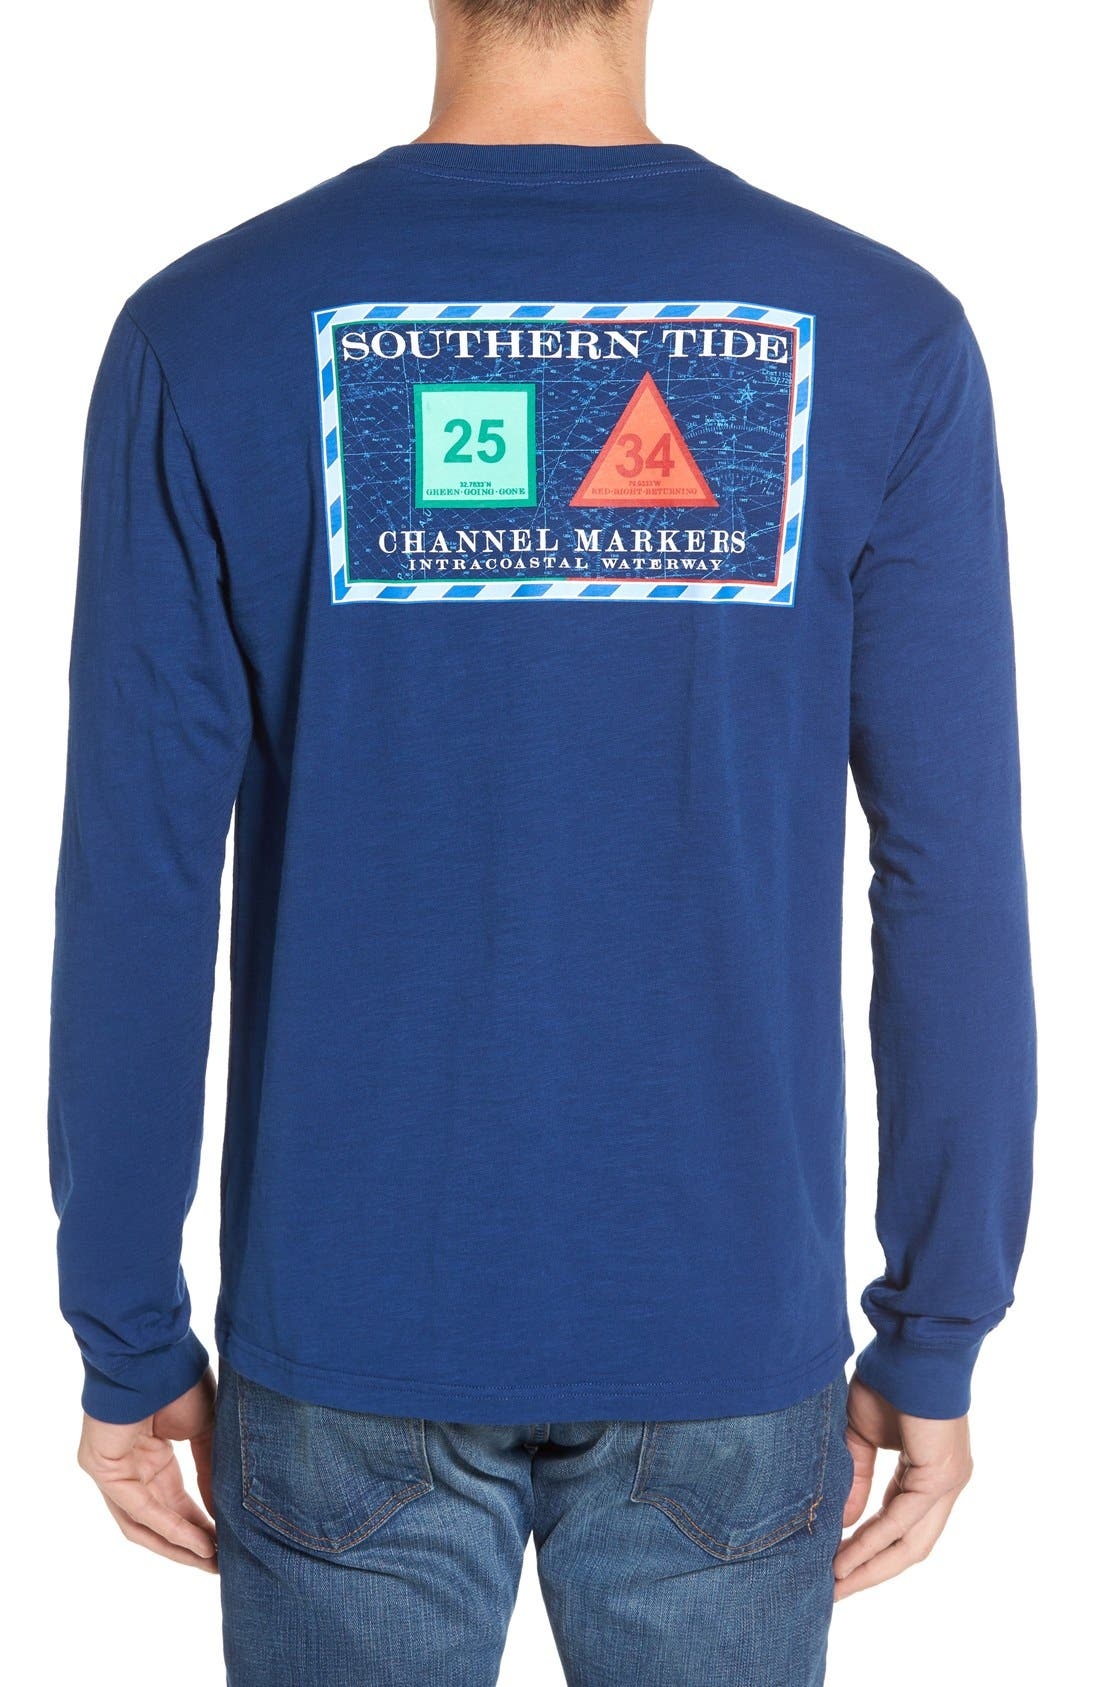 Main Image - Southern Tide 'Channel Marker' Graphic Pocket Long Sleeve T-Shirt